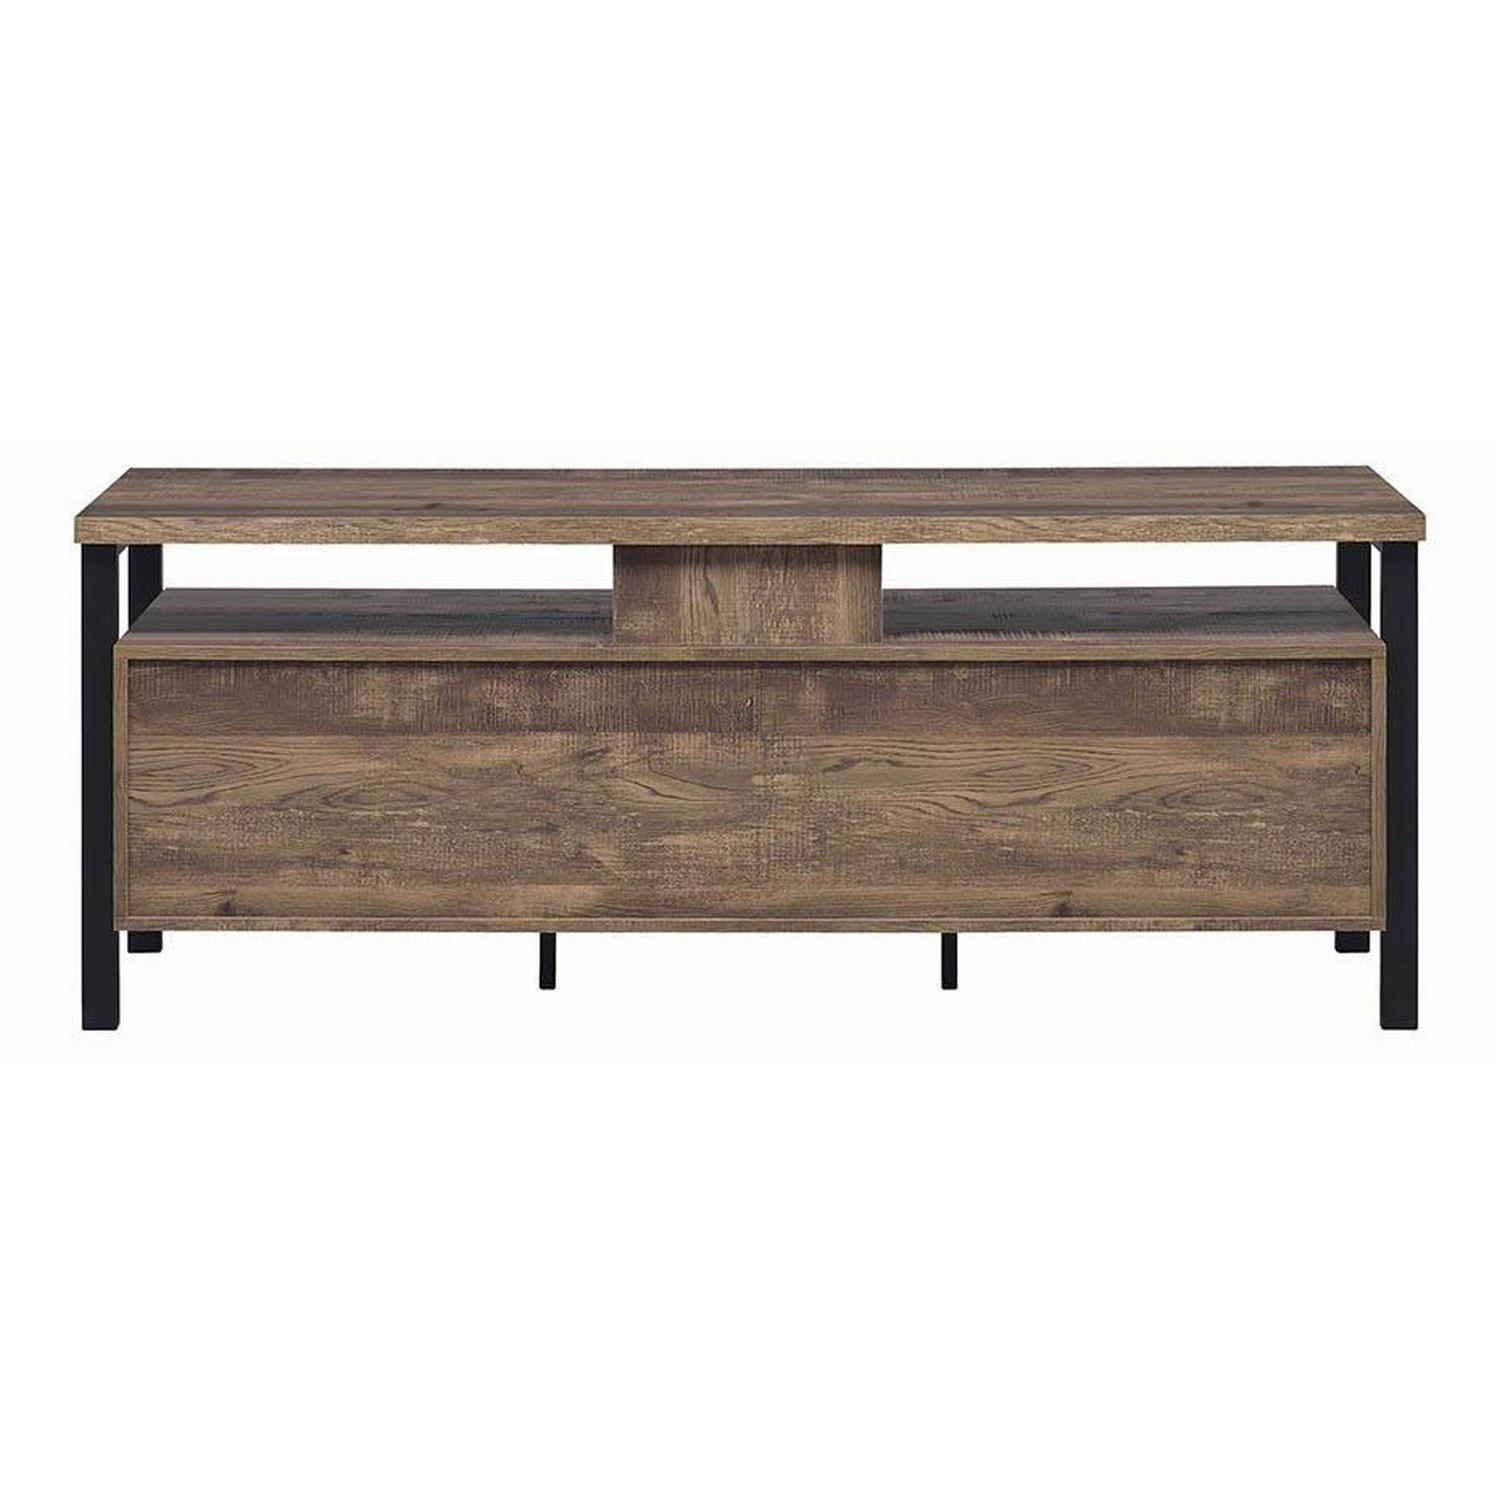 TV Stand In Rustic Oak Finish w/ 2 Cabinets & 2 Drawers - image-4